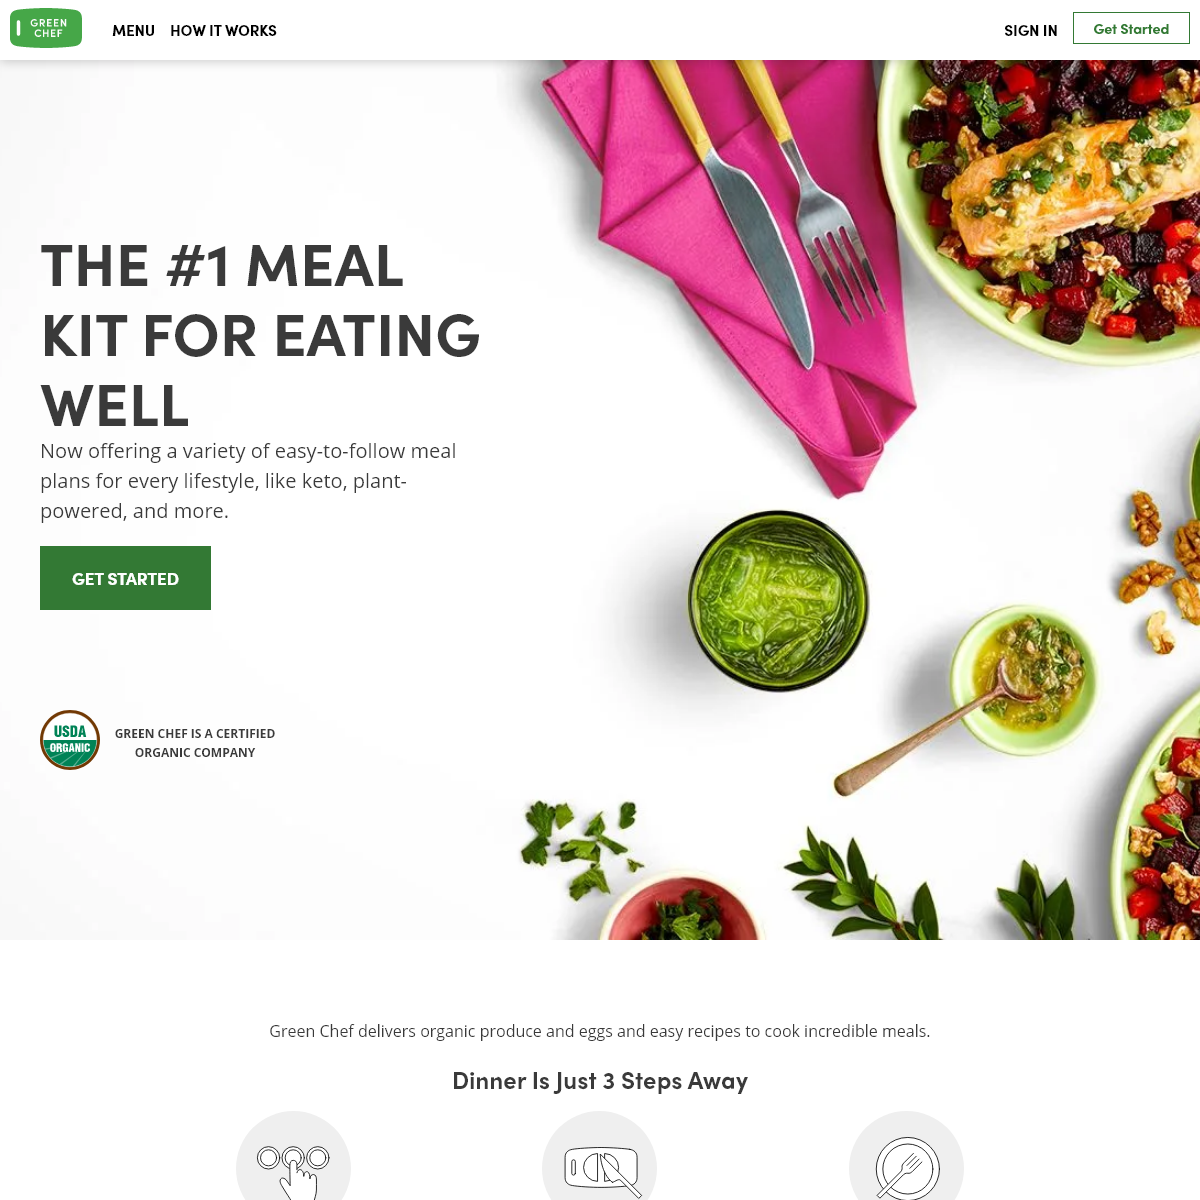 Healthy and Organic Meal Kit Delivery Service - Green Chef